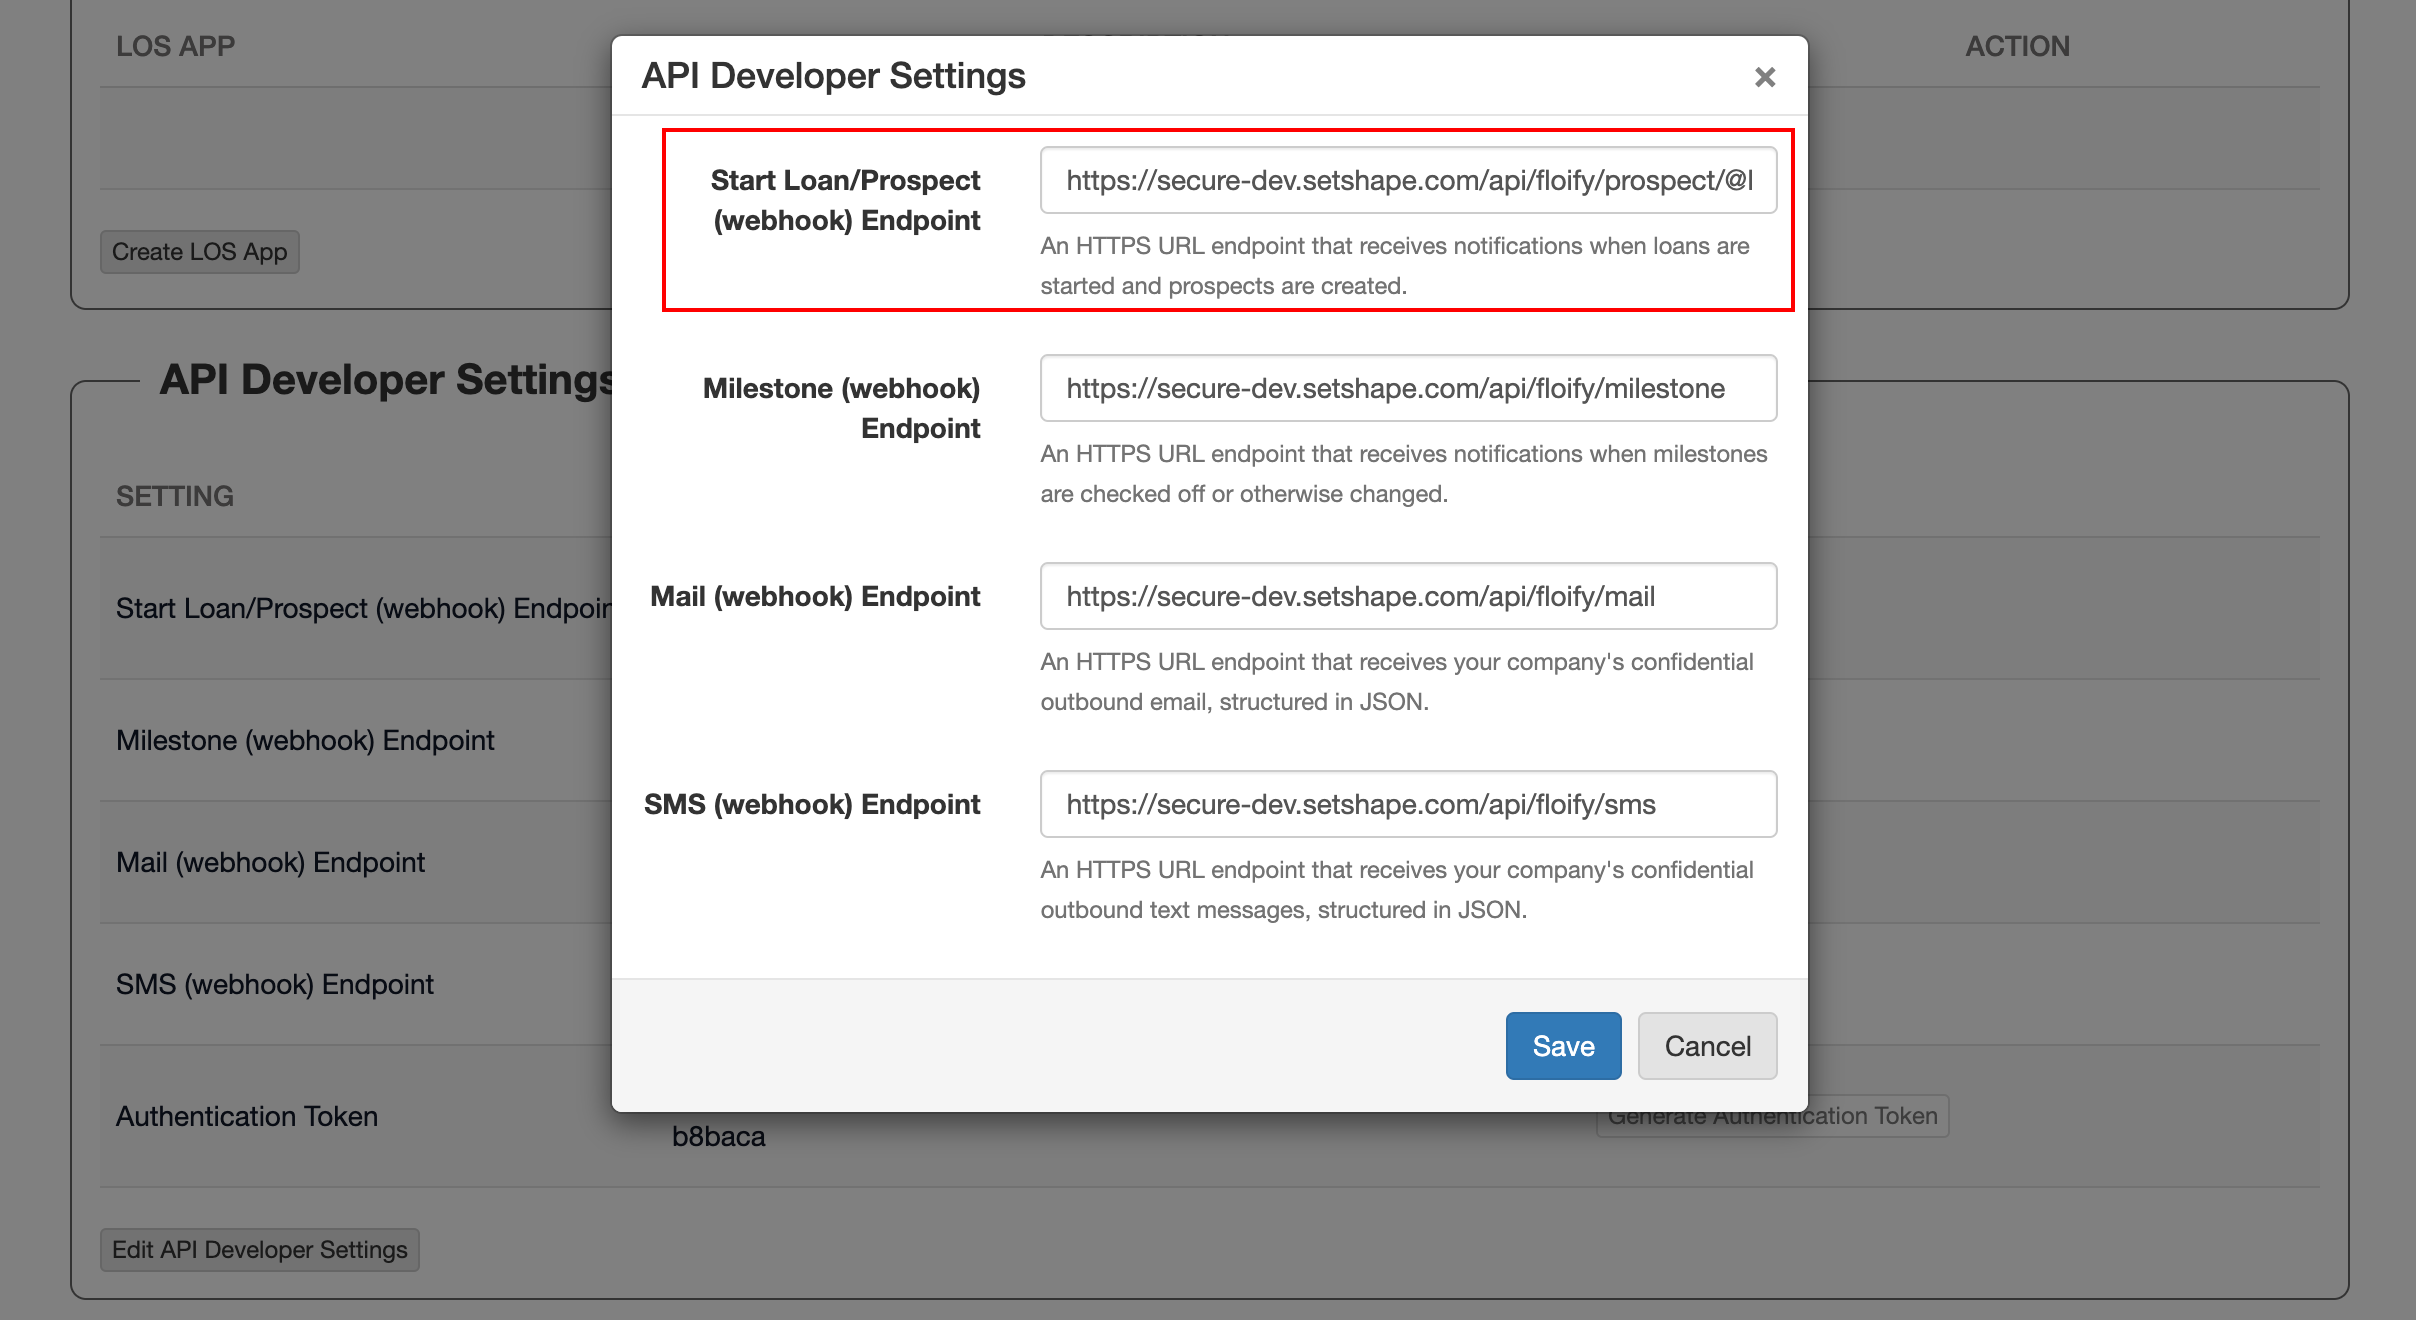 Step 18:  The top Start Loan/Prospect (webhook) Endpoint value is the only unique webhook value.  This value will be:  https://secure-dev.setshape.com/api/floify/prospect/   SourceID-created-in-shapemarketingsources   (See Step 4)    SourceID-created-in-shapemarketingsources   needs to be replaced with the Source ID (starting with the @ symbol and ending with the last alpha-numeric digit) found in Step 4 of this tutorial. Go back to the Shape Marketing Sources tab and copy the Source ID value and paste it after  https://secure-dev.setshape.com/api/floify/prospect/  for the  Start Loan/Prospect (webhook) Endpoint.